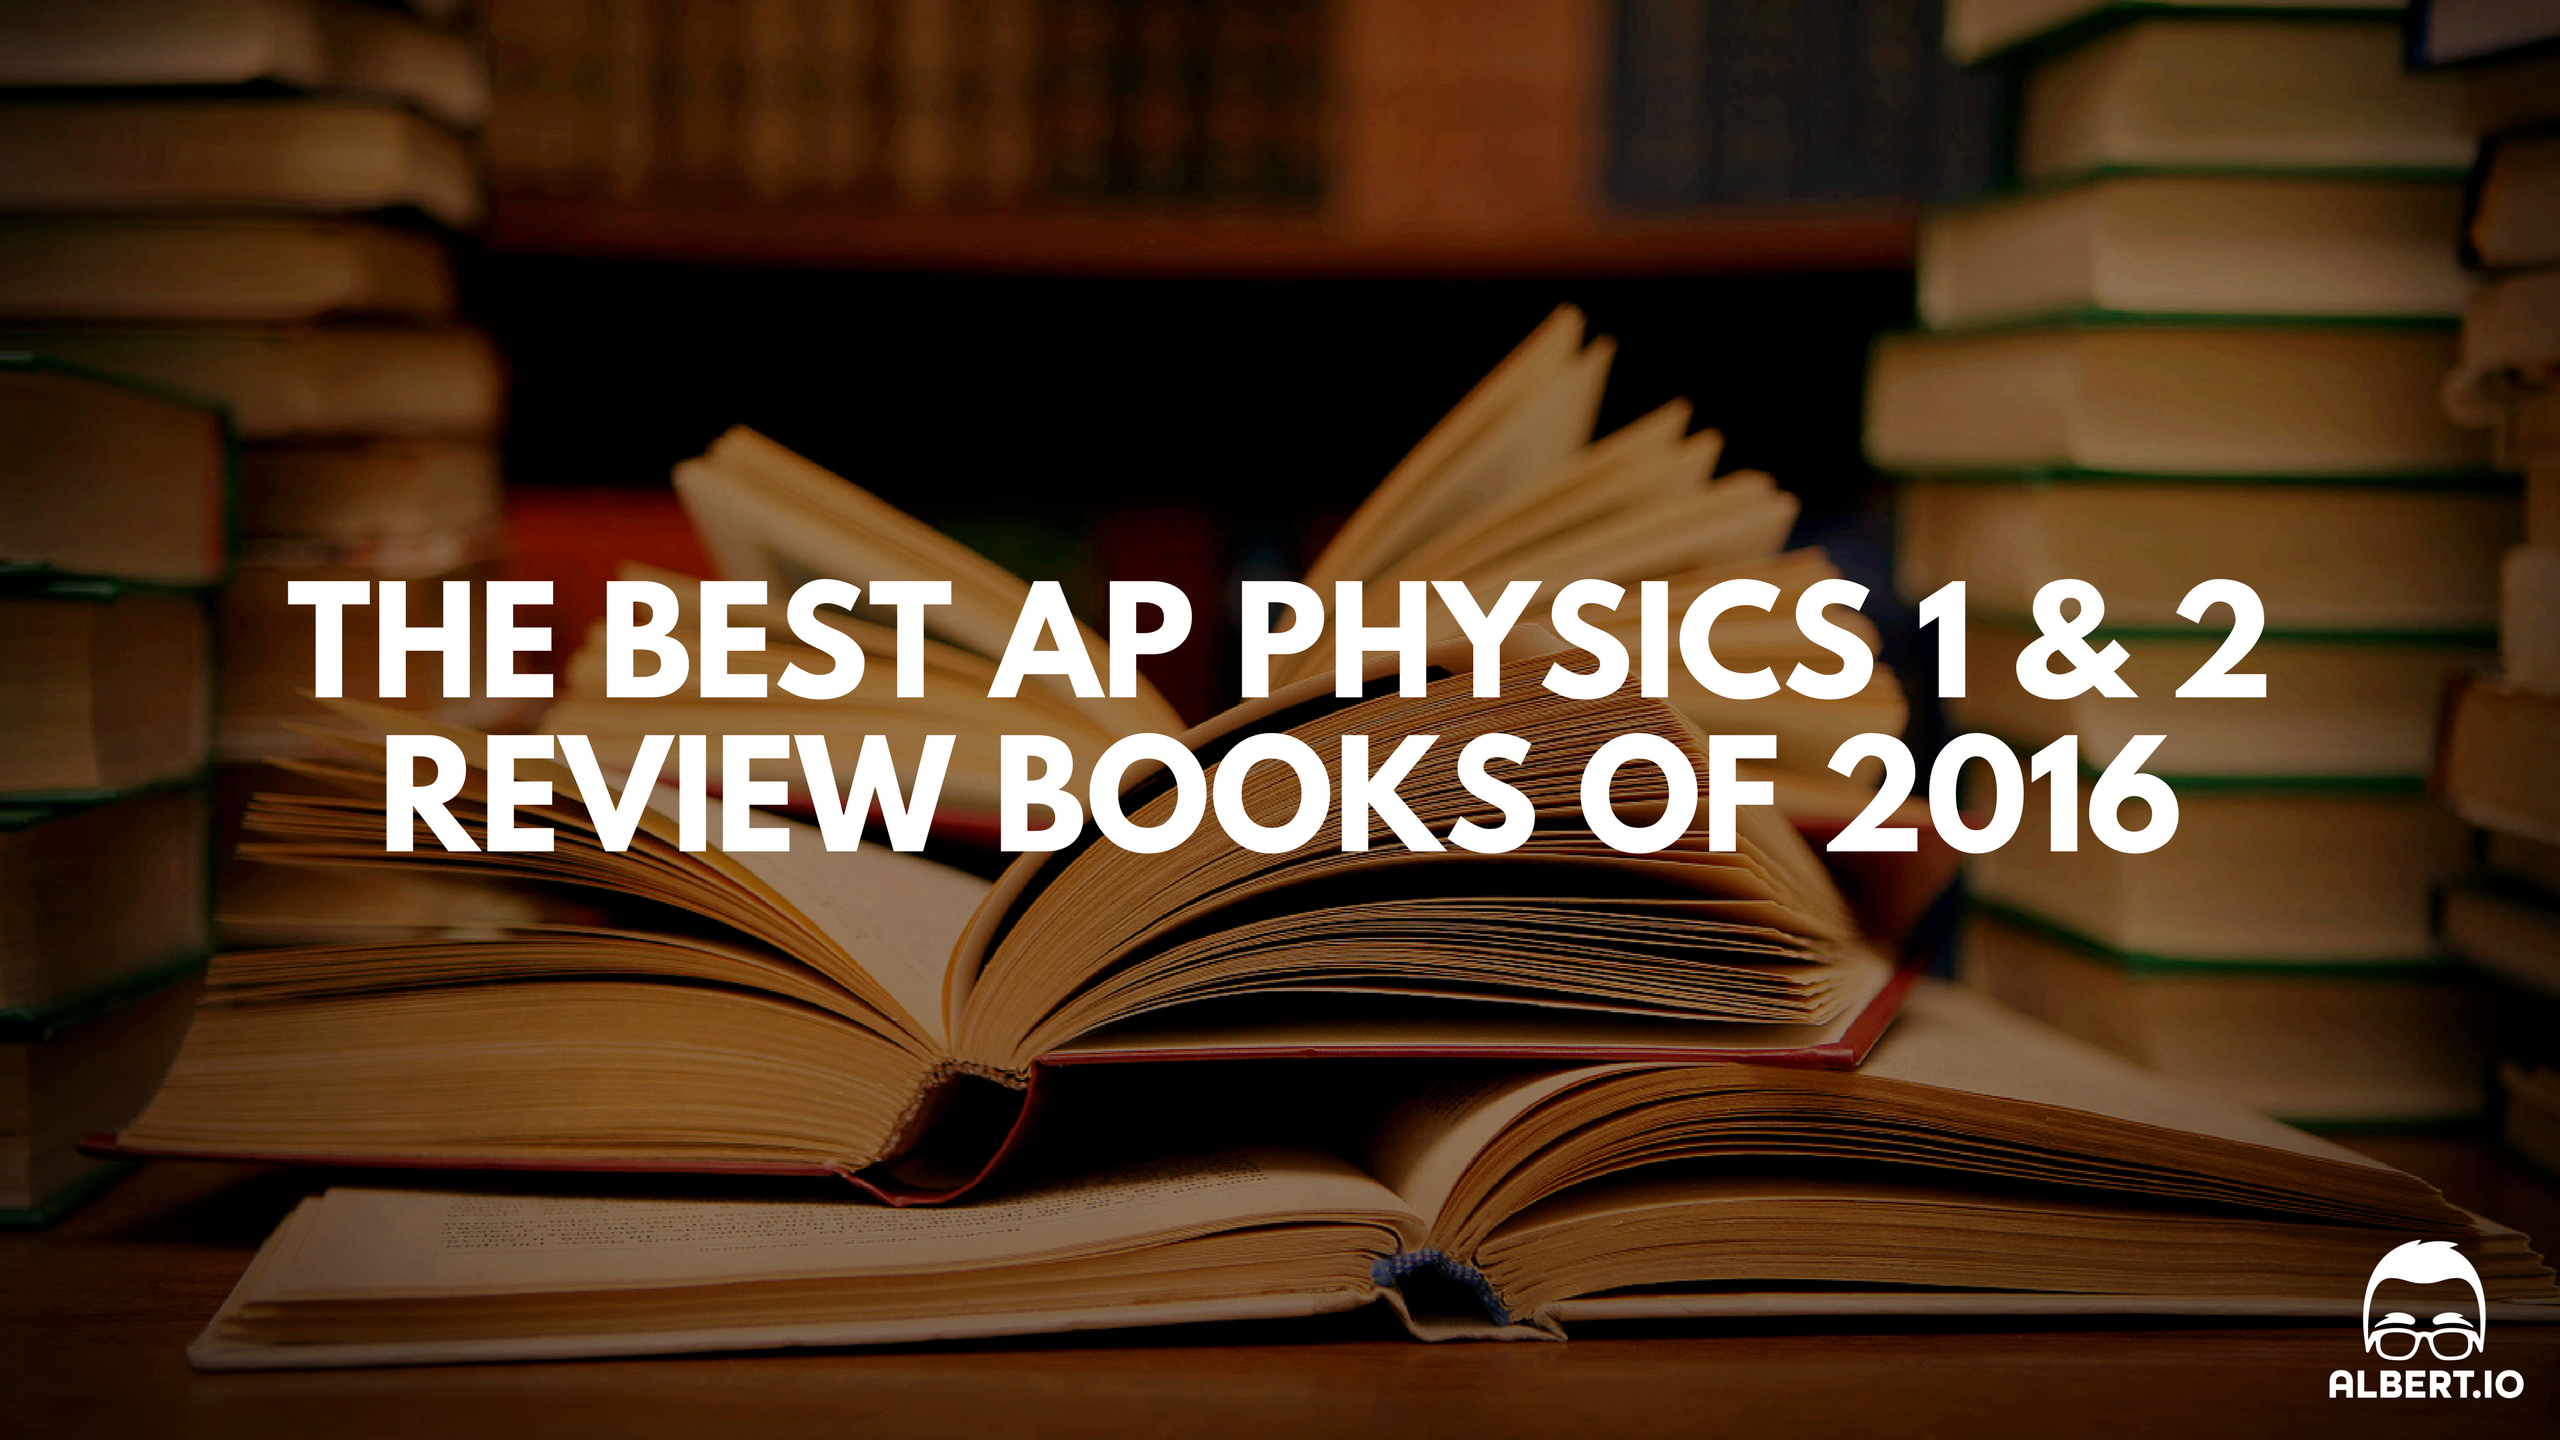 physics 2 1 However, the ap program recently replaced ap physics b, a one-year course, with two one-year courses: ap physics 1 and ap physics 2 these are both algebra-based physics courses, which means they don't require a math background beyond algebra ii the ap program still offers ap physics c, which.